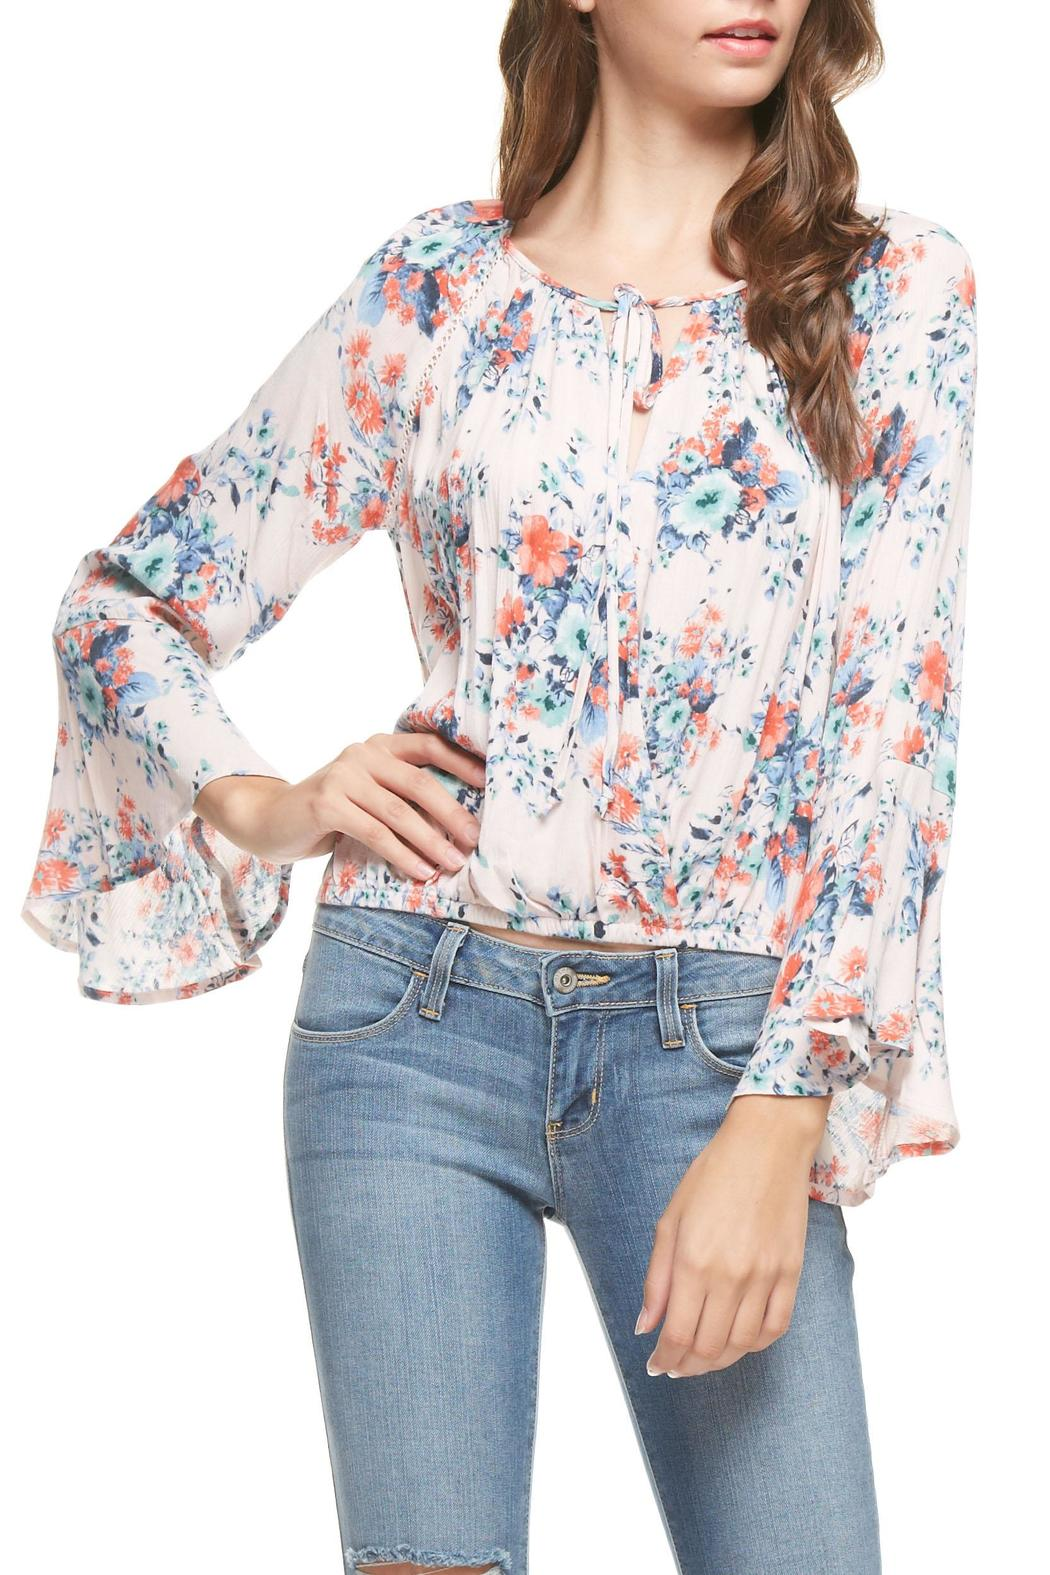 fbfa87a8b8a706 Lush Floral Bell Sleeve Top from Alaska by Apricot Lane - Anchorage ...